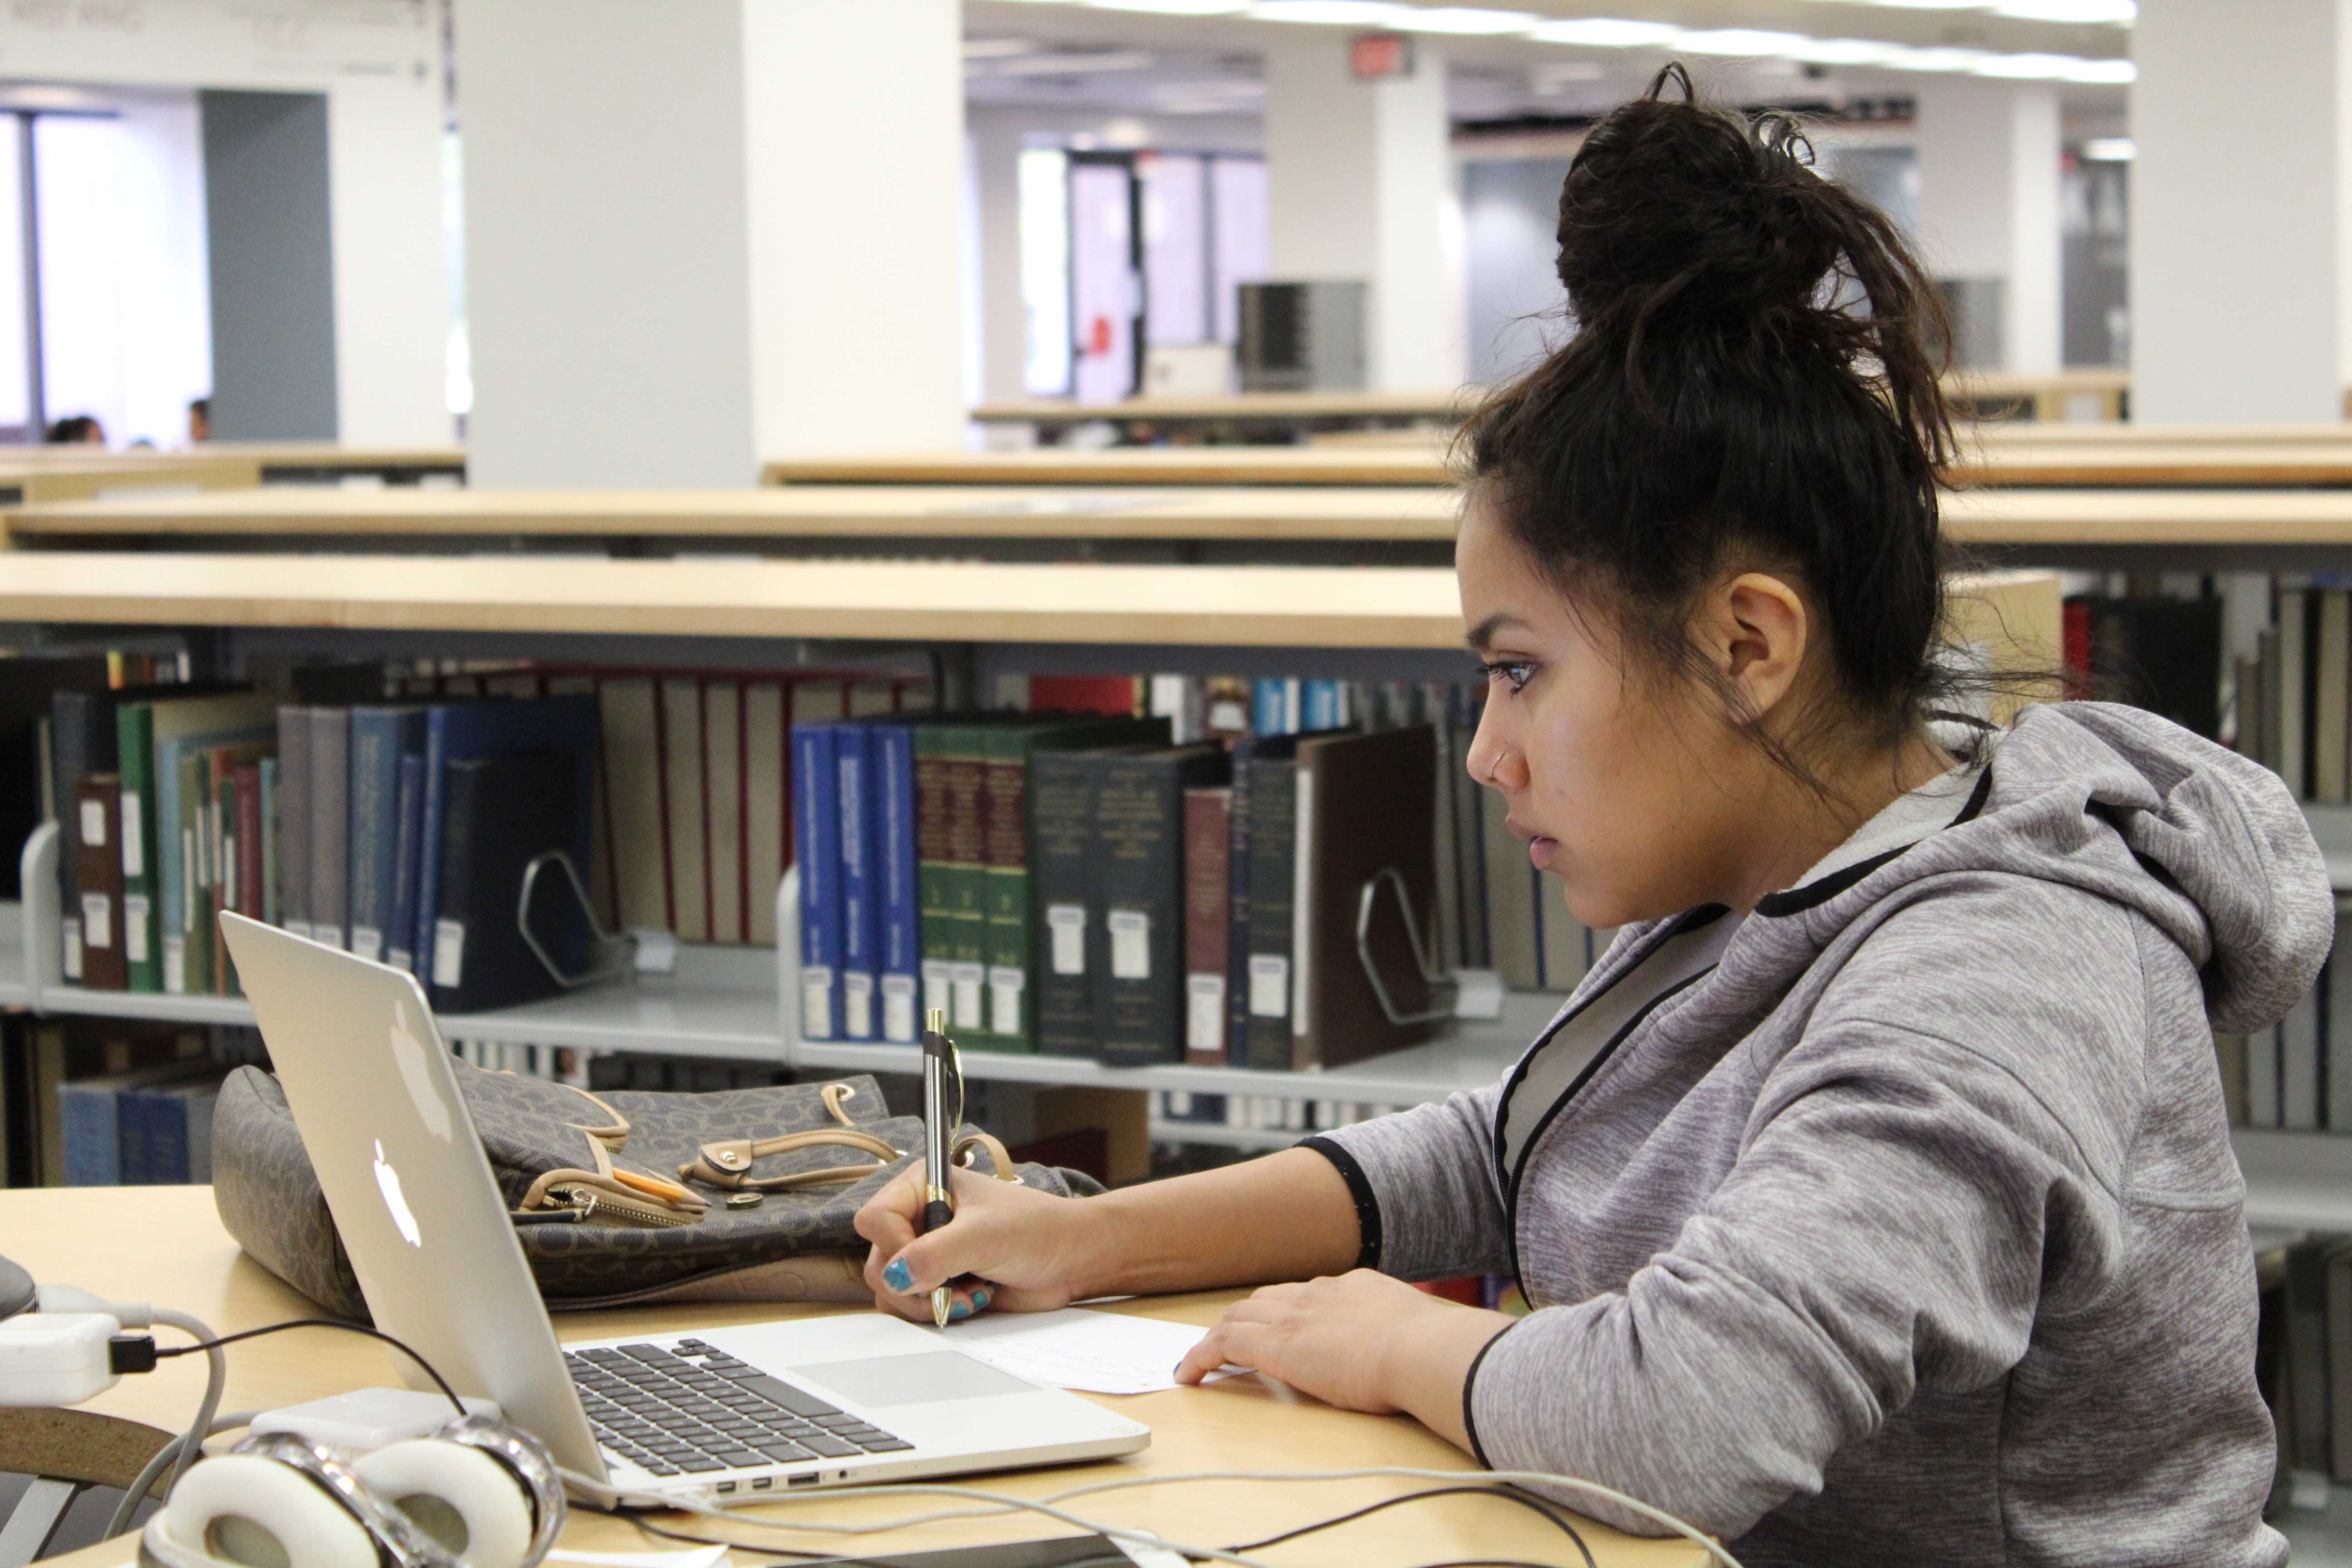 Araceli Uribe, 18 years old and studying Mechanical Engineering here at CSUN, working diligently in the Oviatt Library on Monday April 3rd, 2017. Photo credit: Sofia Scaglione